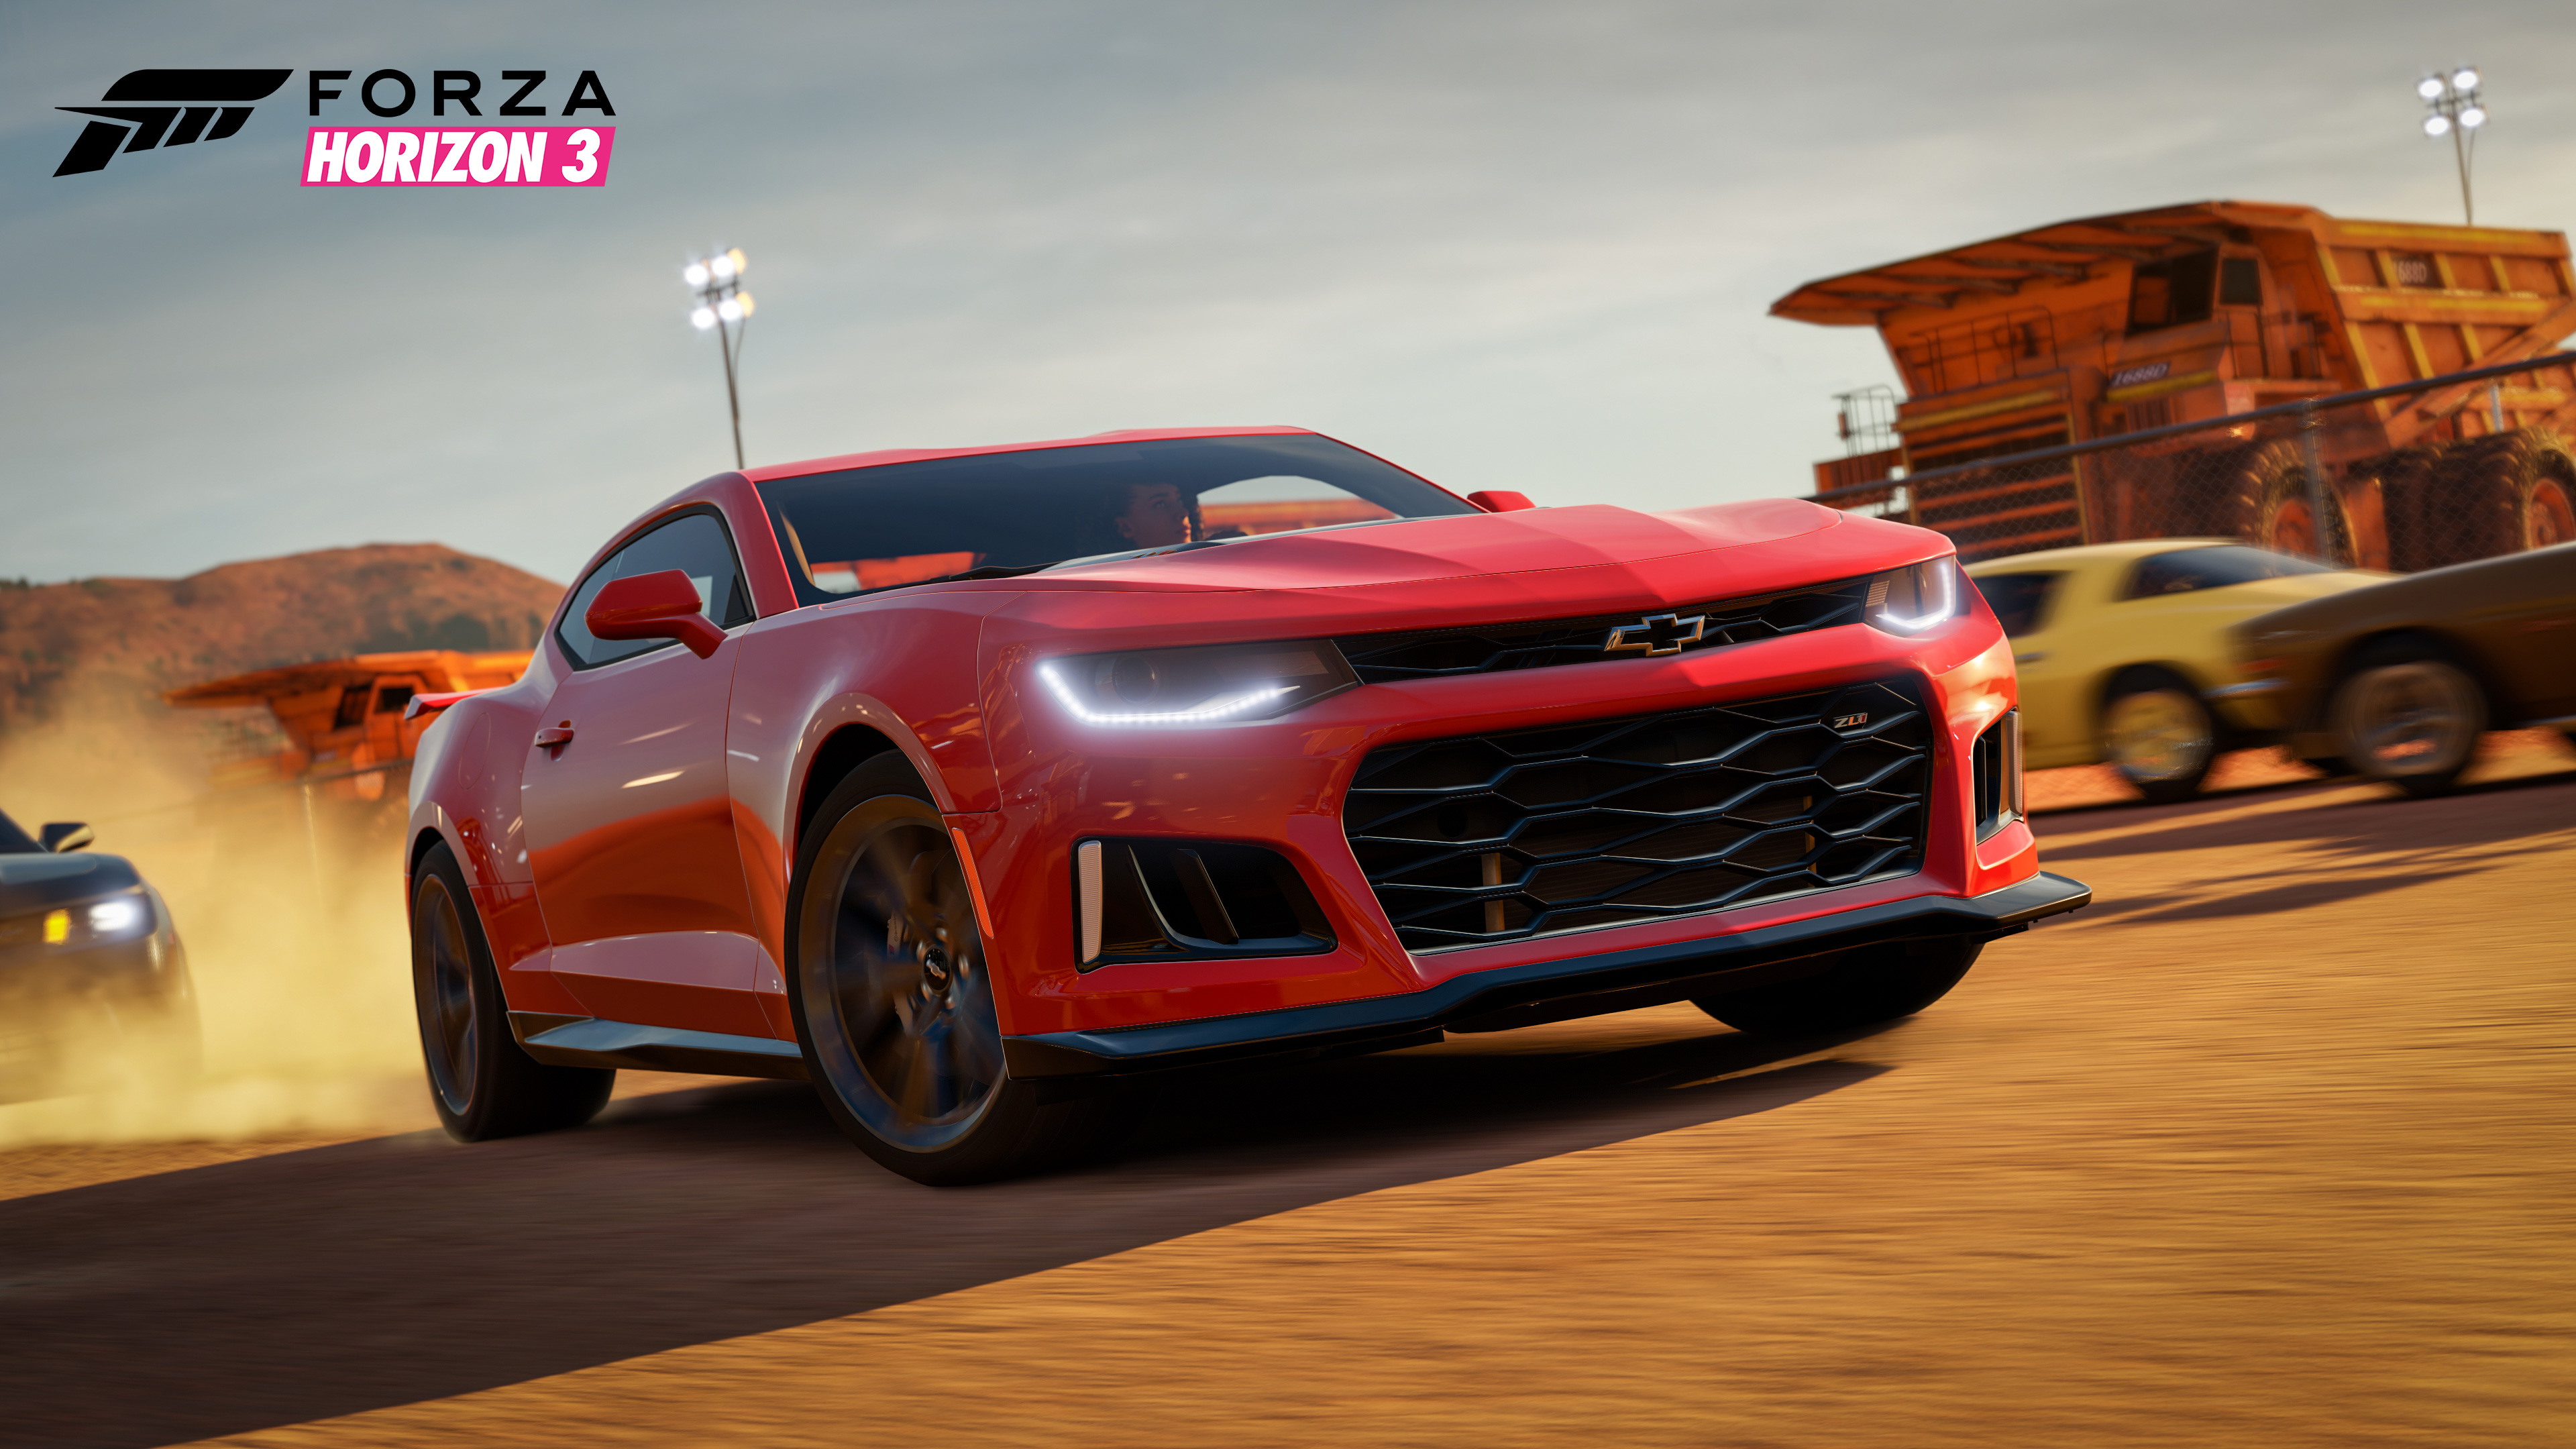 The Duracell Car Pack is coming to Forza Horizon 3 tomorrow.